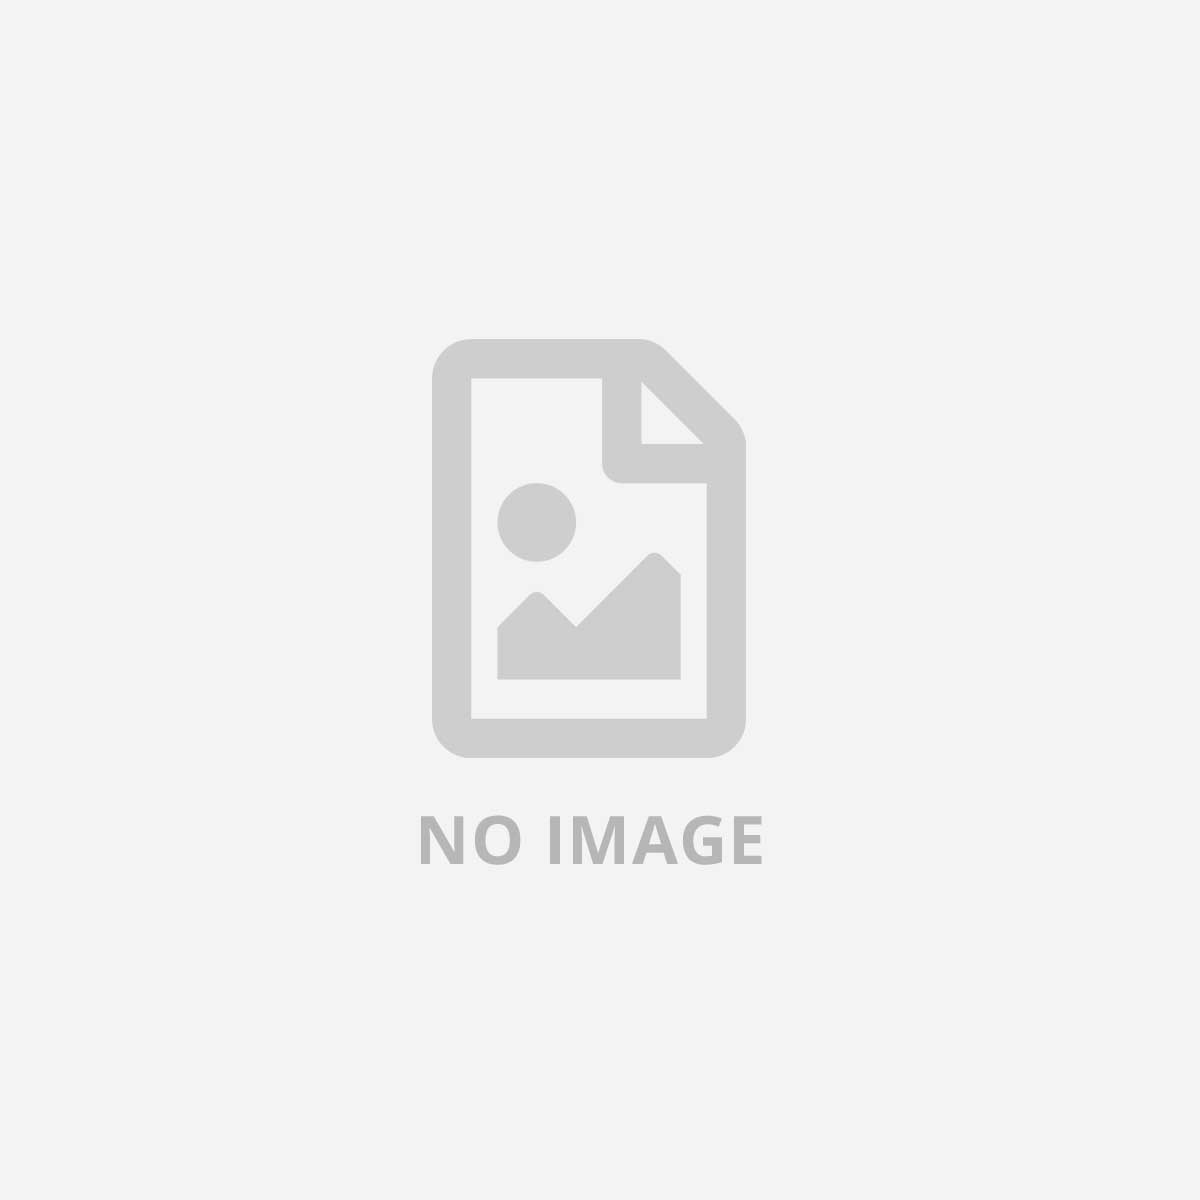 FUJIFILM DVD RW 4 7GB 4X JEWEL CASE CONF 5PZ